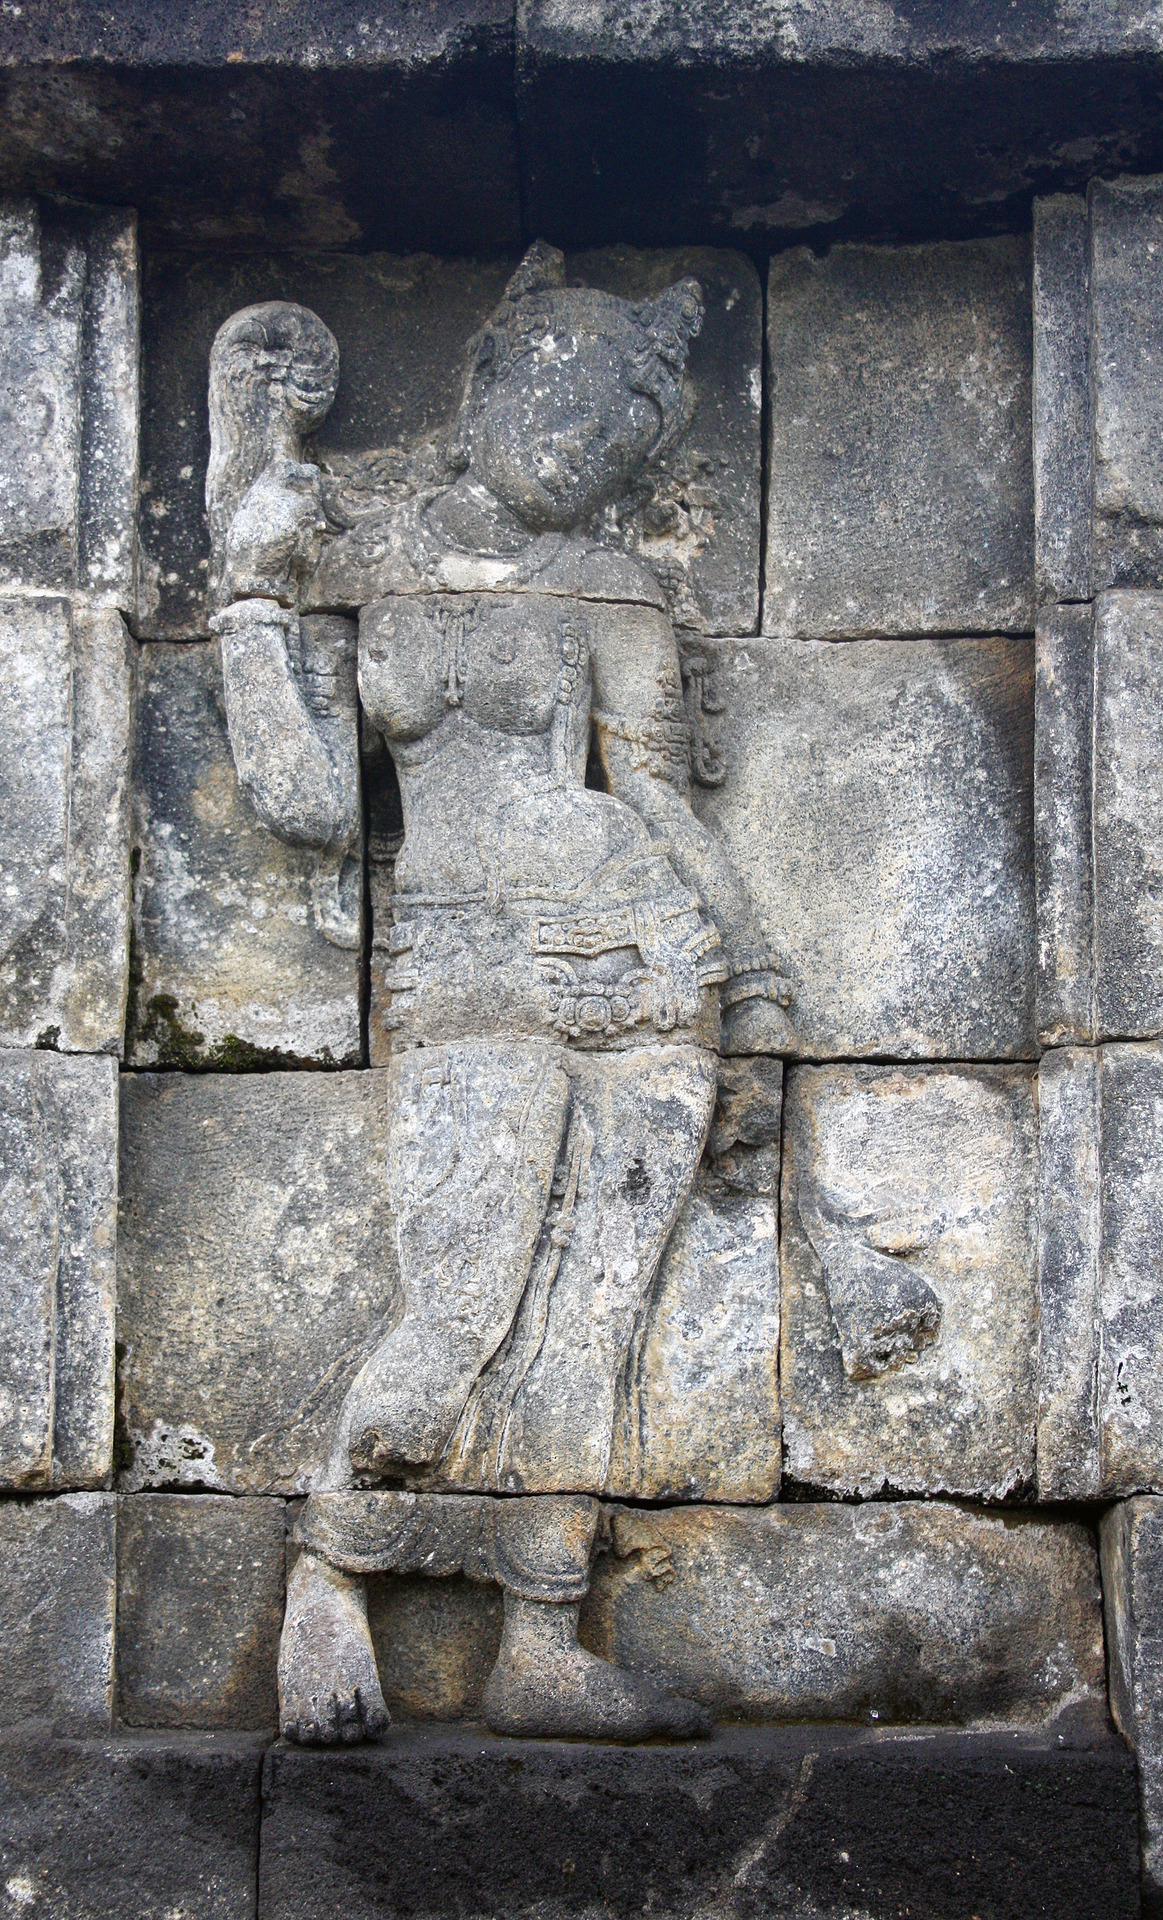 Devata with chamara (fly whisk), Borobudur, Java